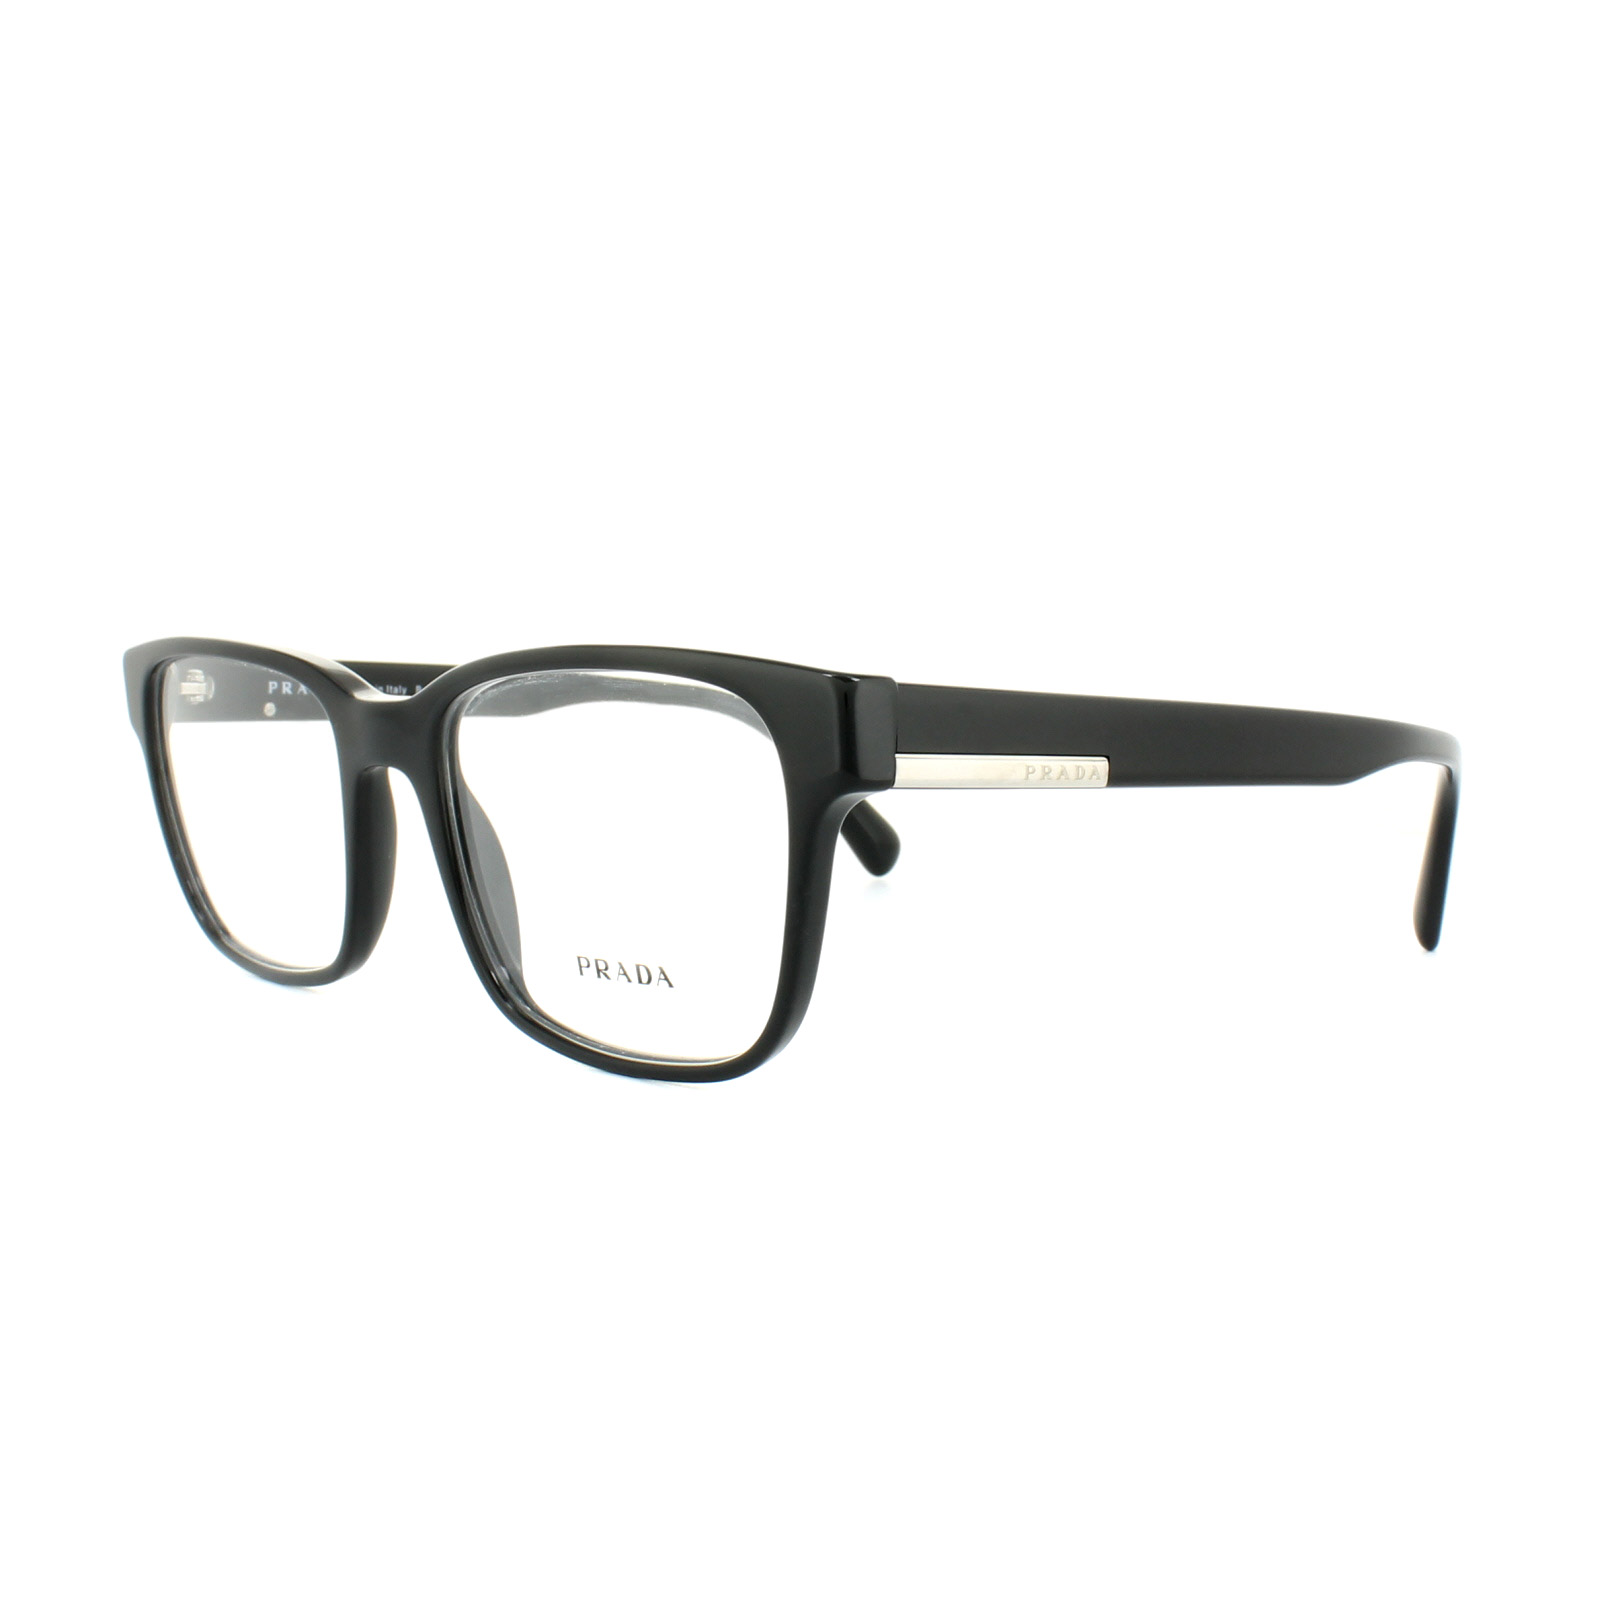 aa92310ade9 Cheap Prada PR 06UV Glasses Frames - Discounted Sunglasses